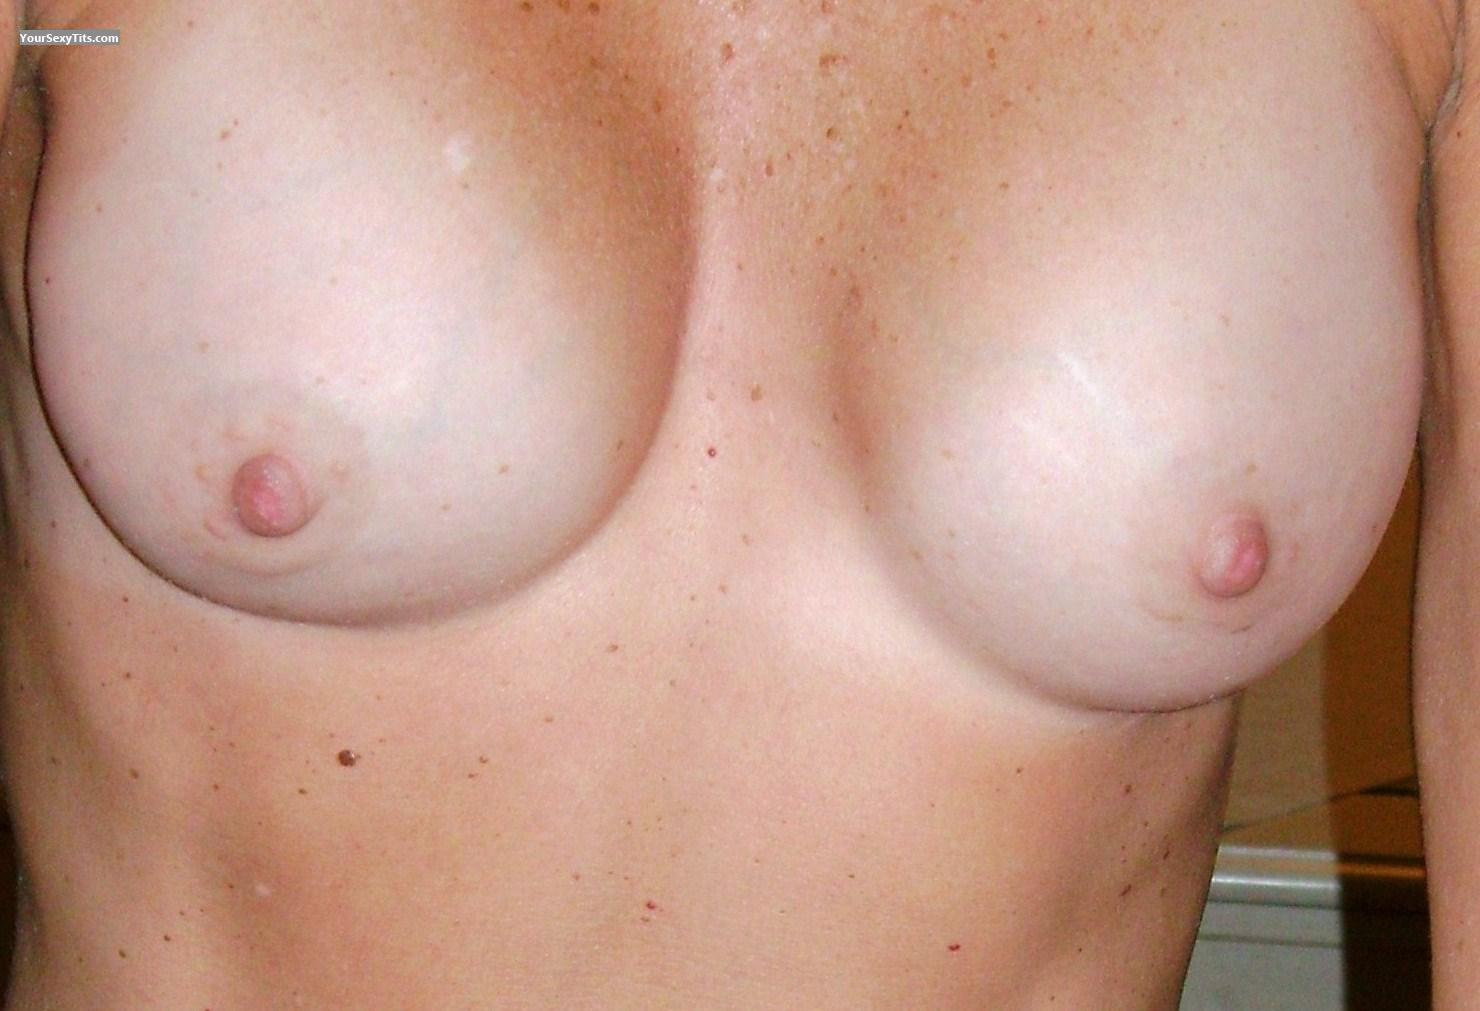 Tit Flash: Medium Tits - Sexycpl from United States